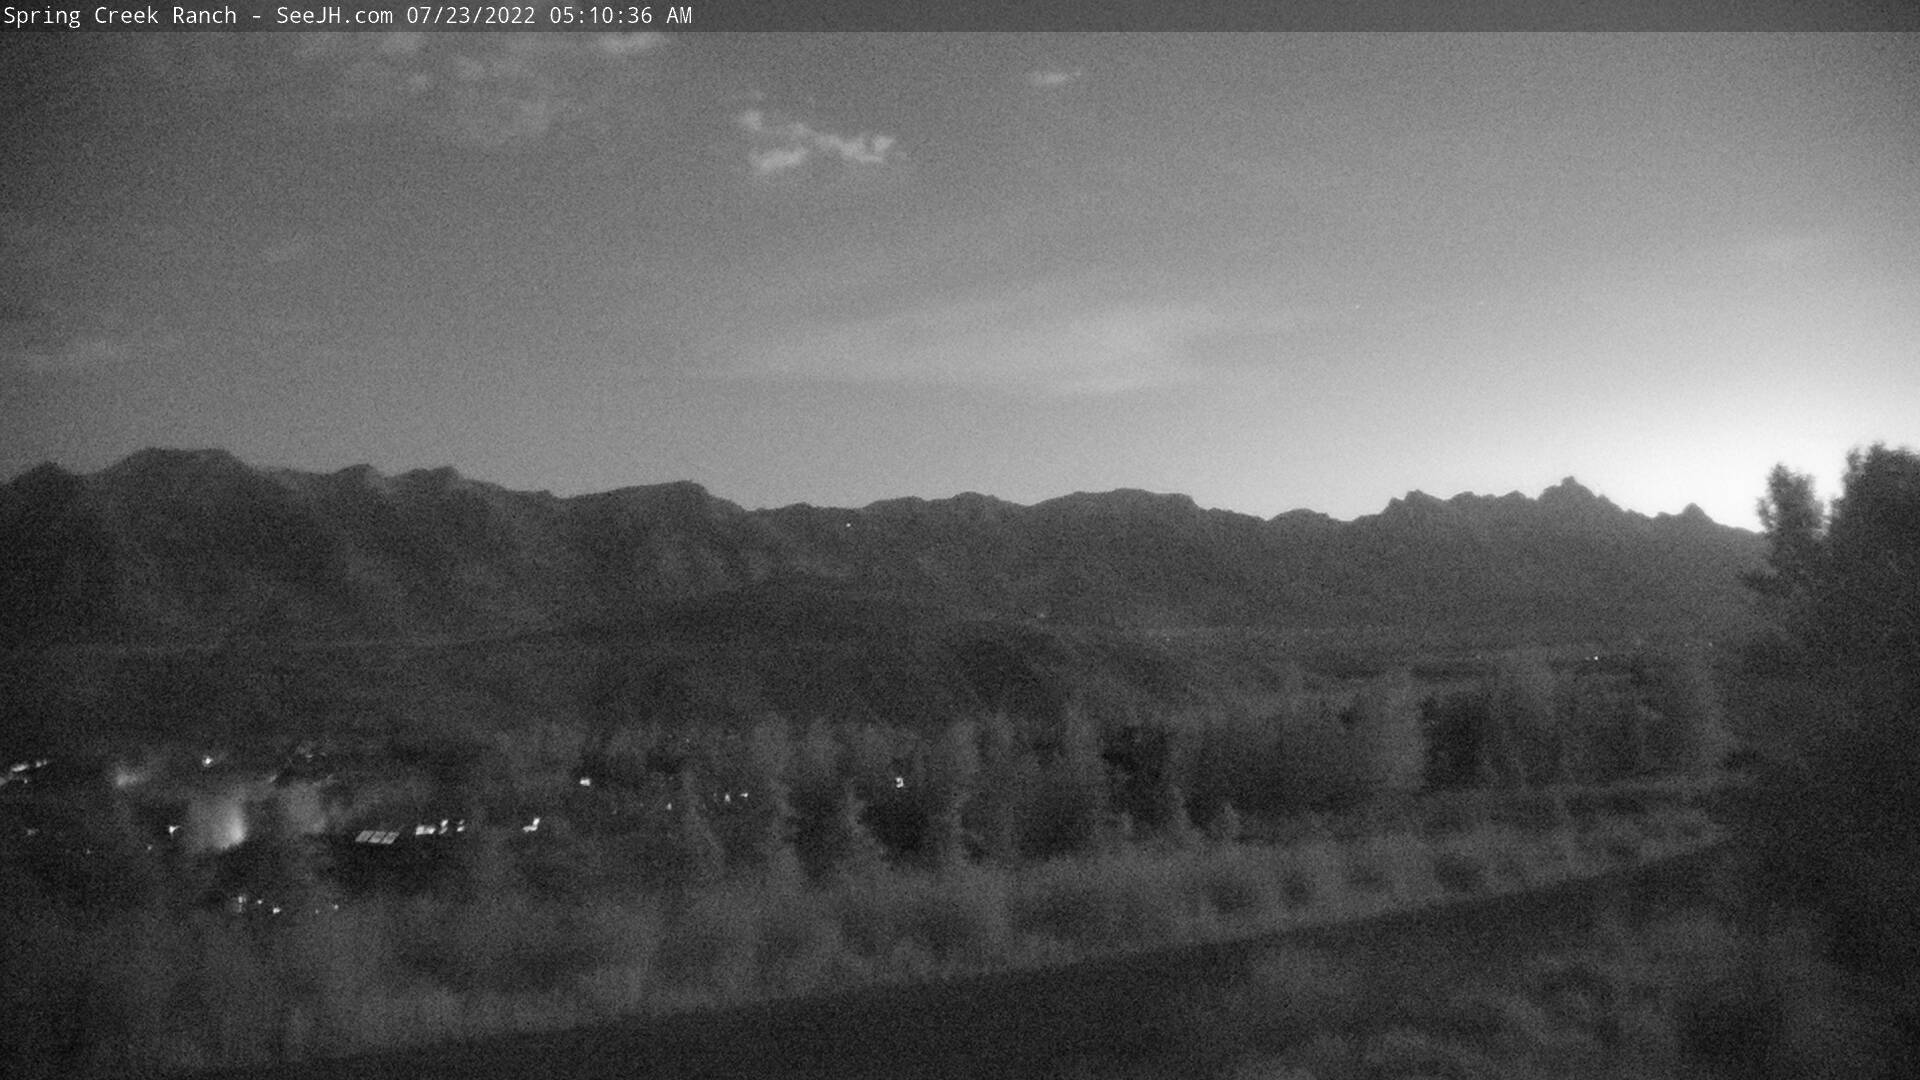 Spring Creek Ranch Webcam